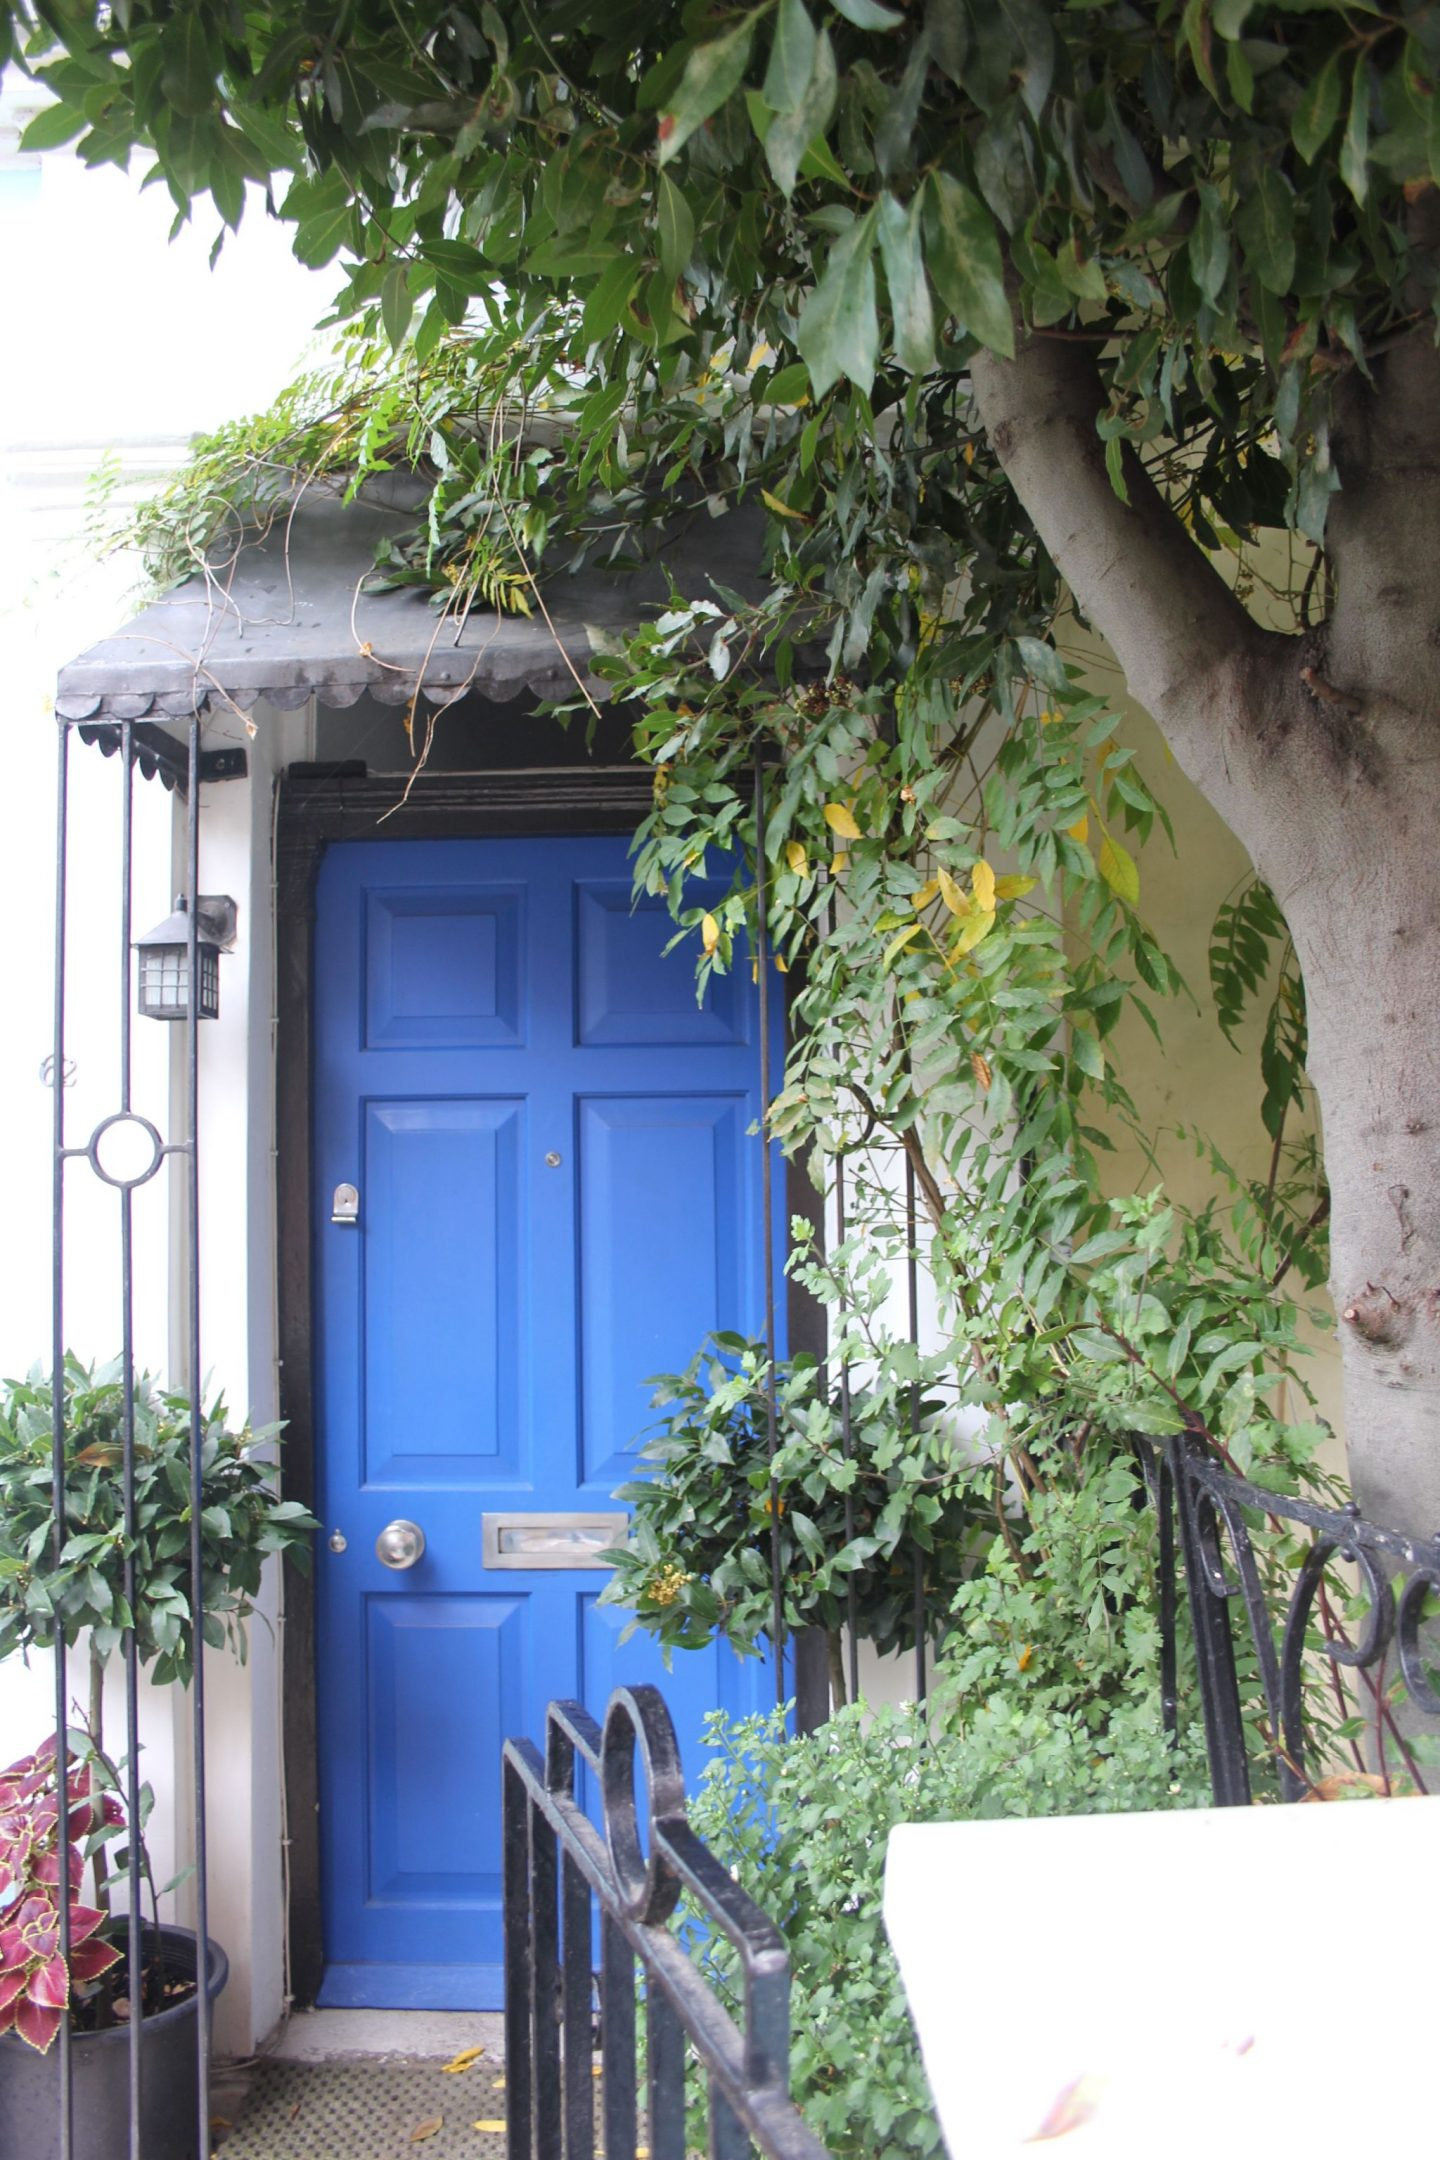 Bright periwinkle blue door at a Notting Hill home. Hello Lovely Studio. Come tour these gorgeous front doors in Notting Hill and Holland Park...certainly lovely indeed. Curb appeal and Paint Color Inspiration. Lovely London Doors & Paint Color Ideas!